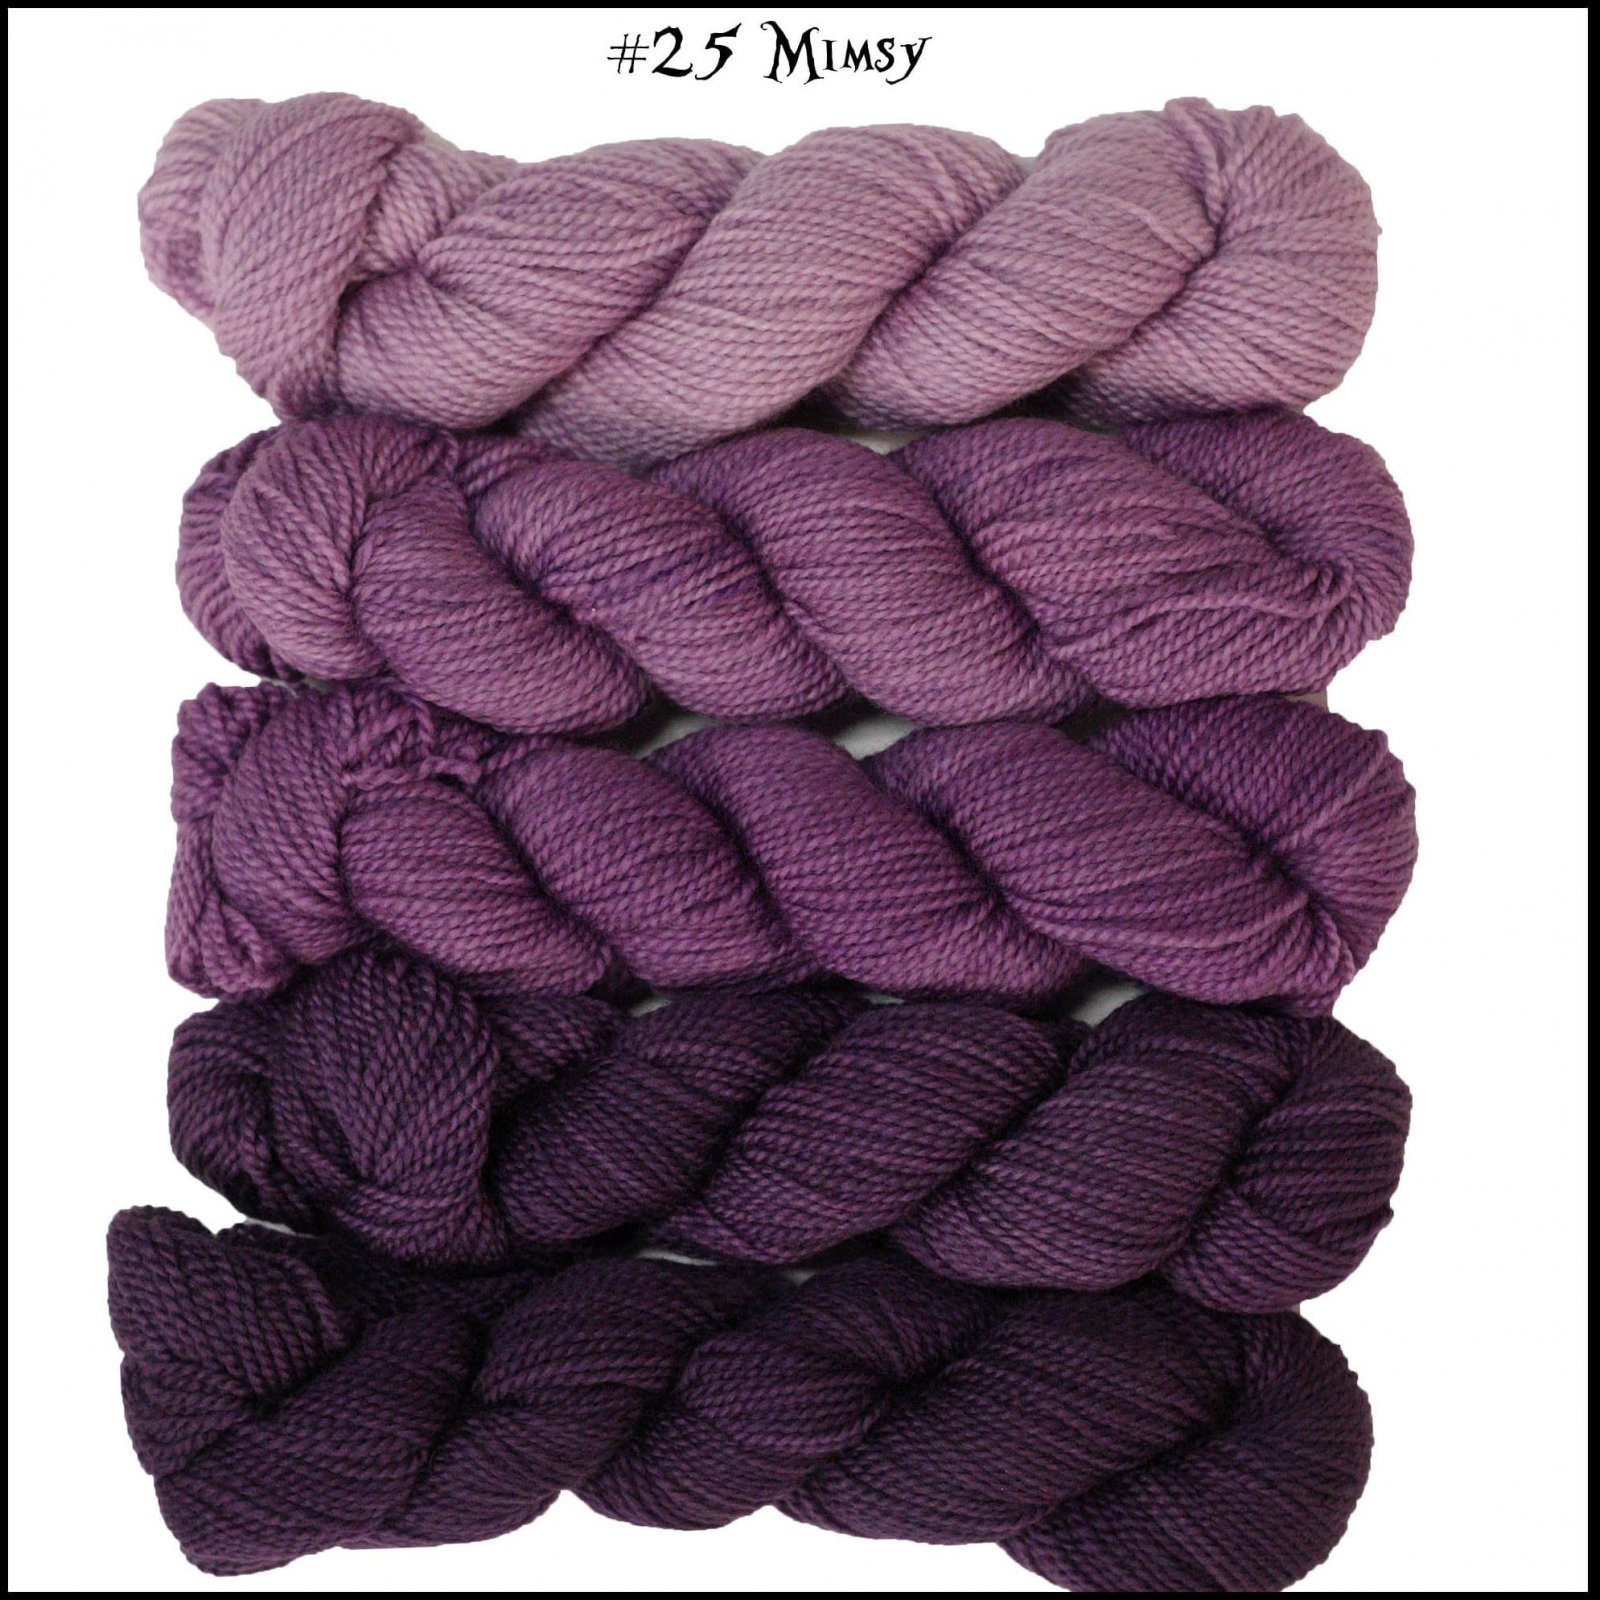 Queen of Hearts Mini Skein Pack